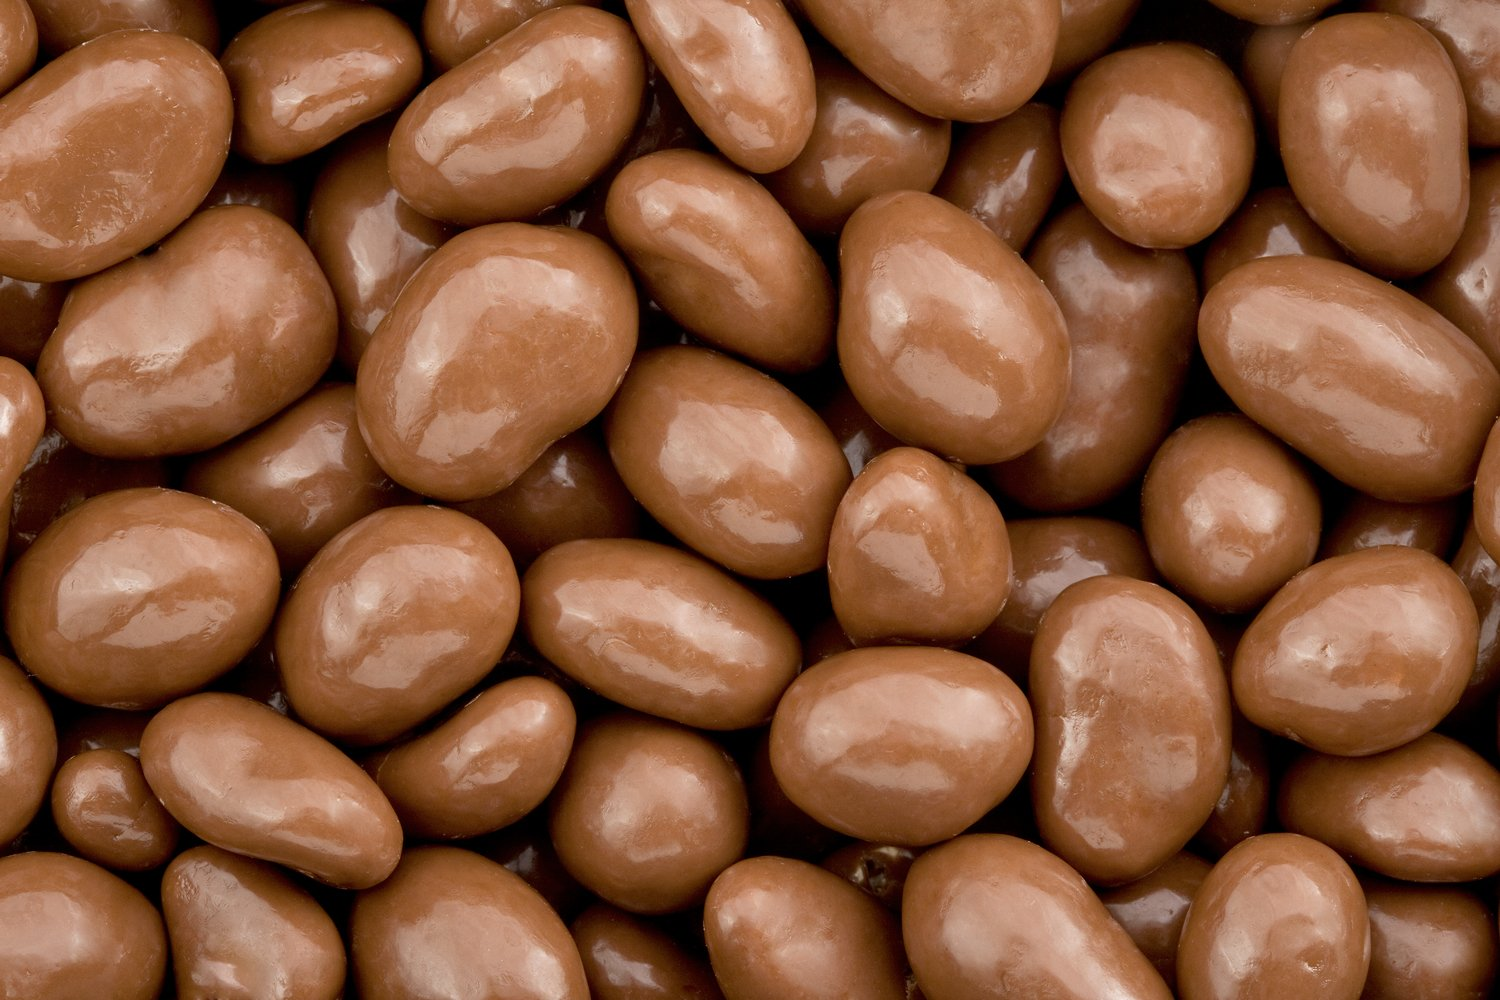 Milk Chocolate Panned Peanuts | All Chocolate | Chocolate ...